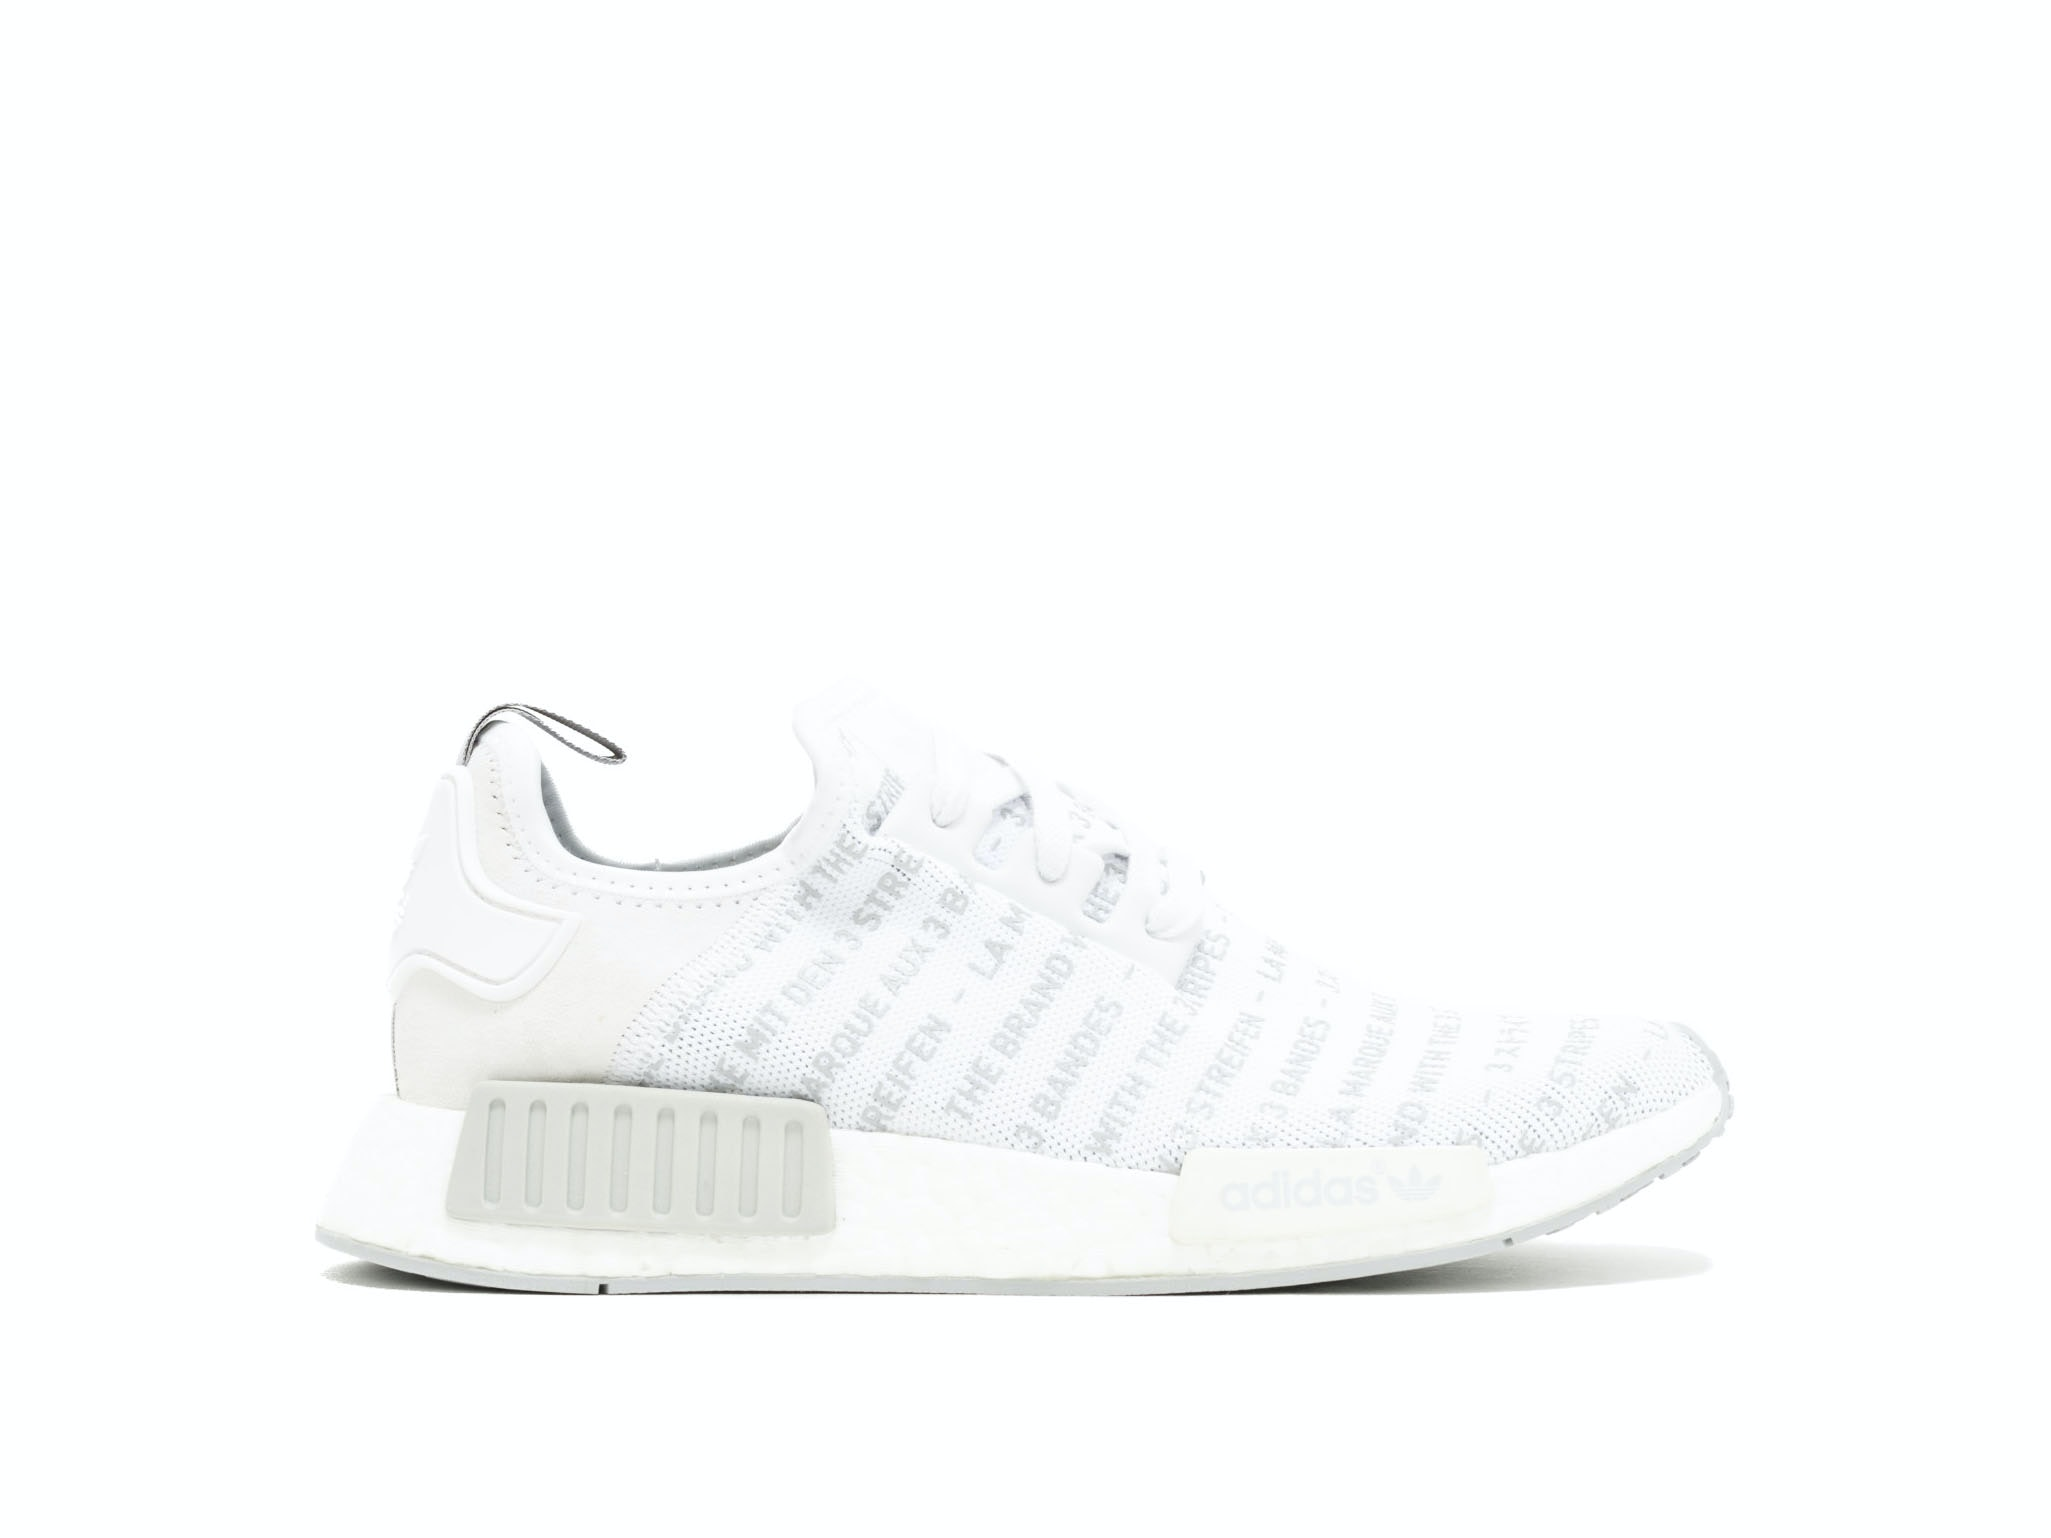 66f85d4e0d9 Shop Whiteout 'The Brand with 3 Stripes' NMD R1 Online | Laced